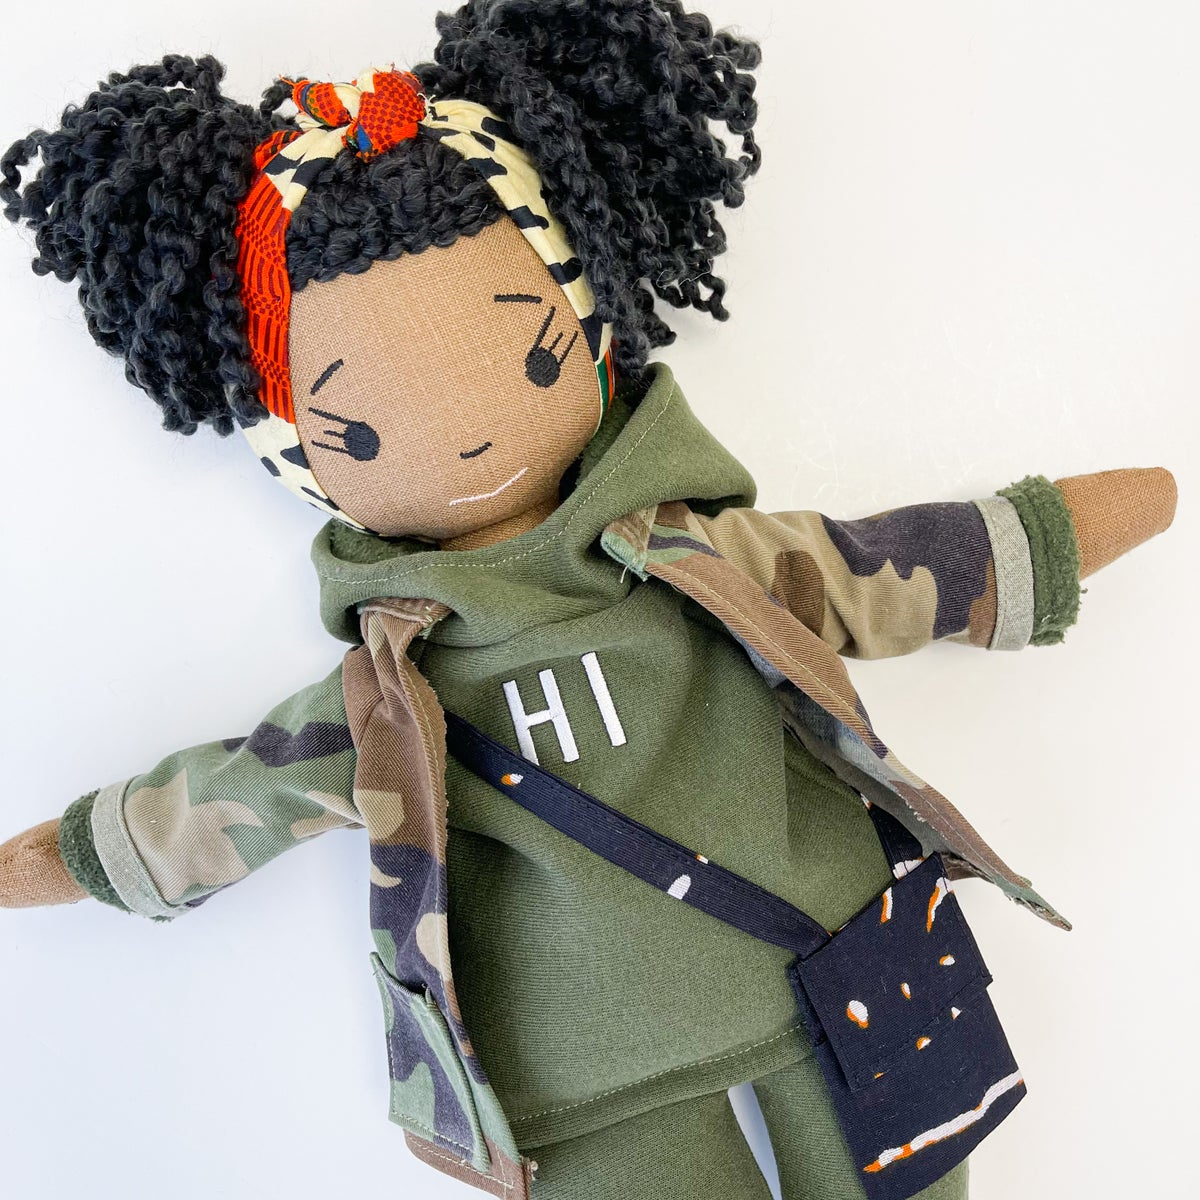 Londynn PLUS More to Love Handmade Doll (SHIP DATE: ON OR BEFORE MARCH 15TH)